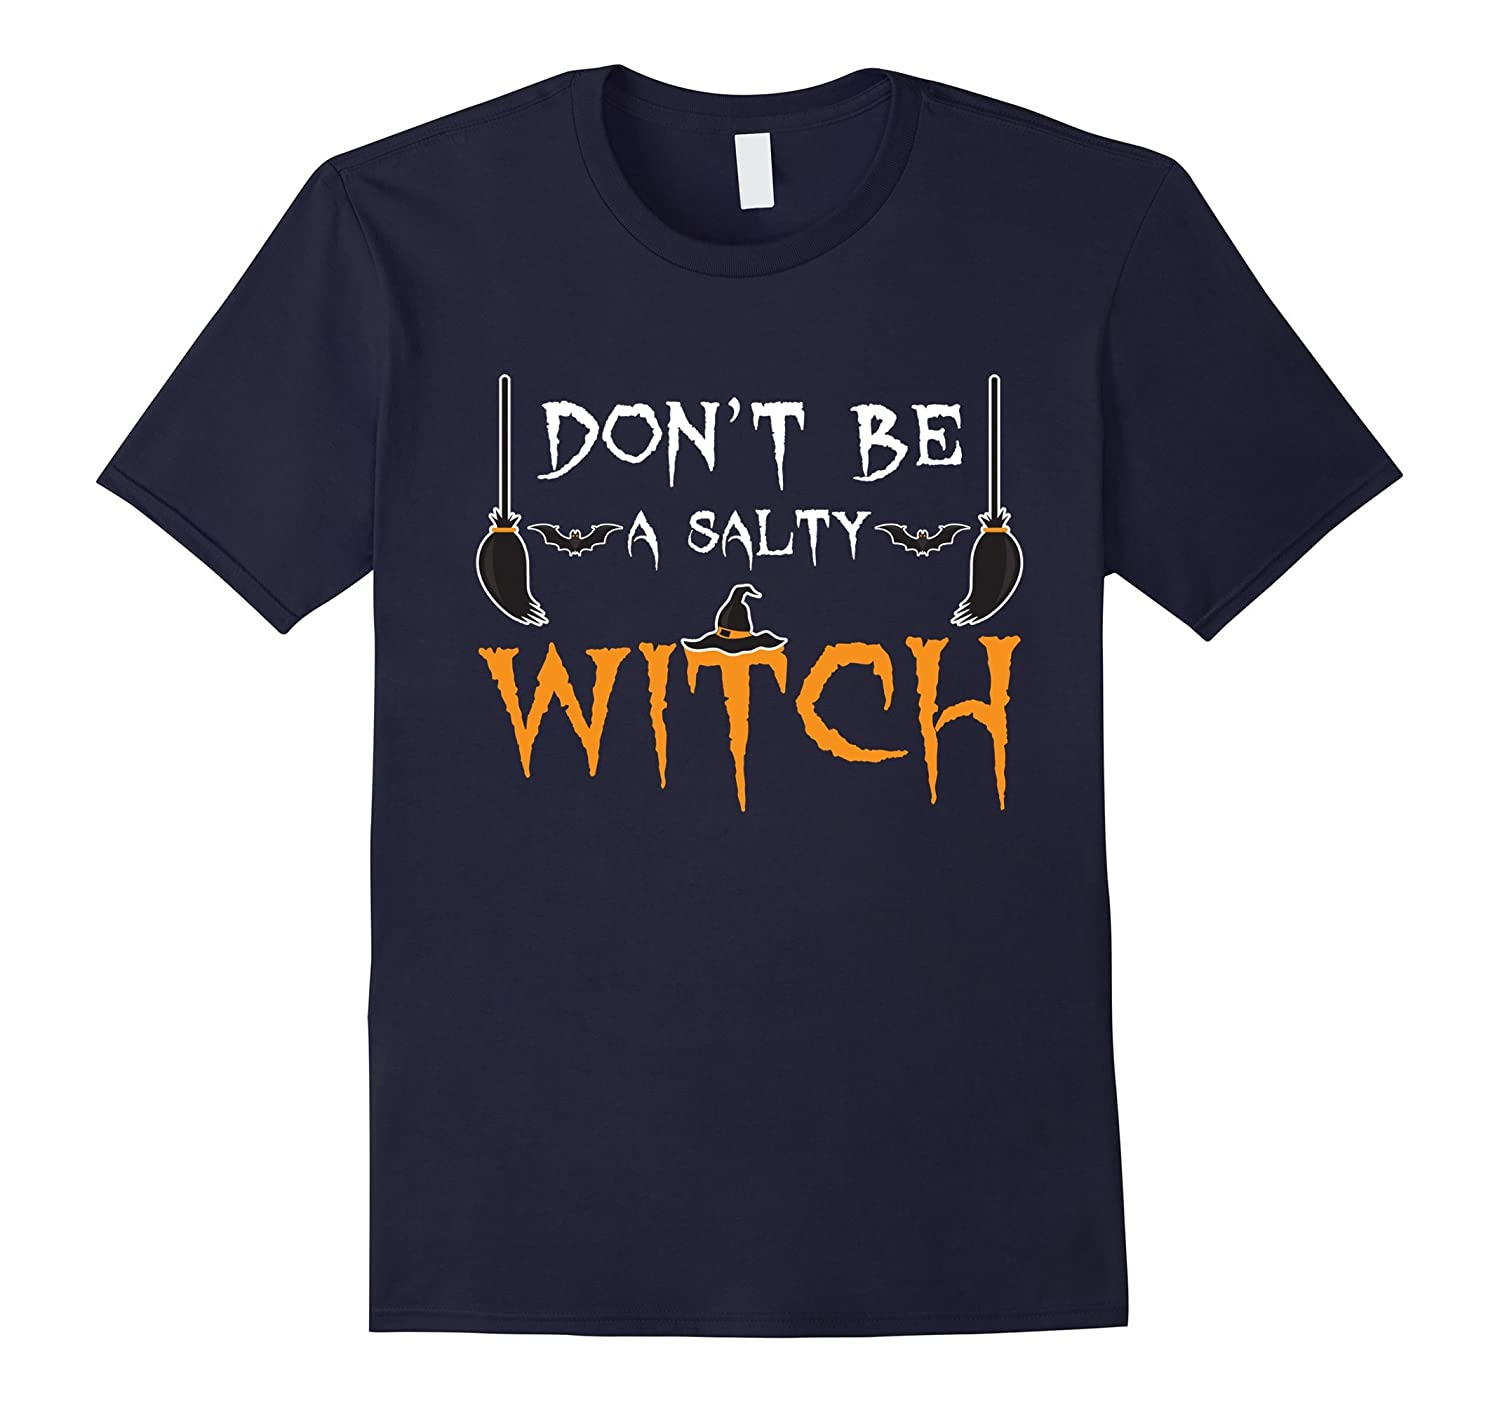 Adult Halloween Shirts - Funny Don't Be A Salty Witch TShirt-4LVS